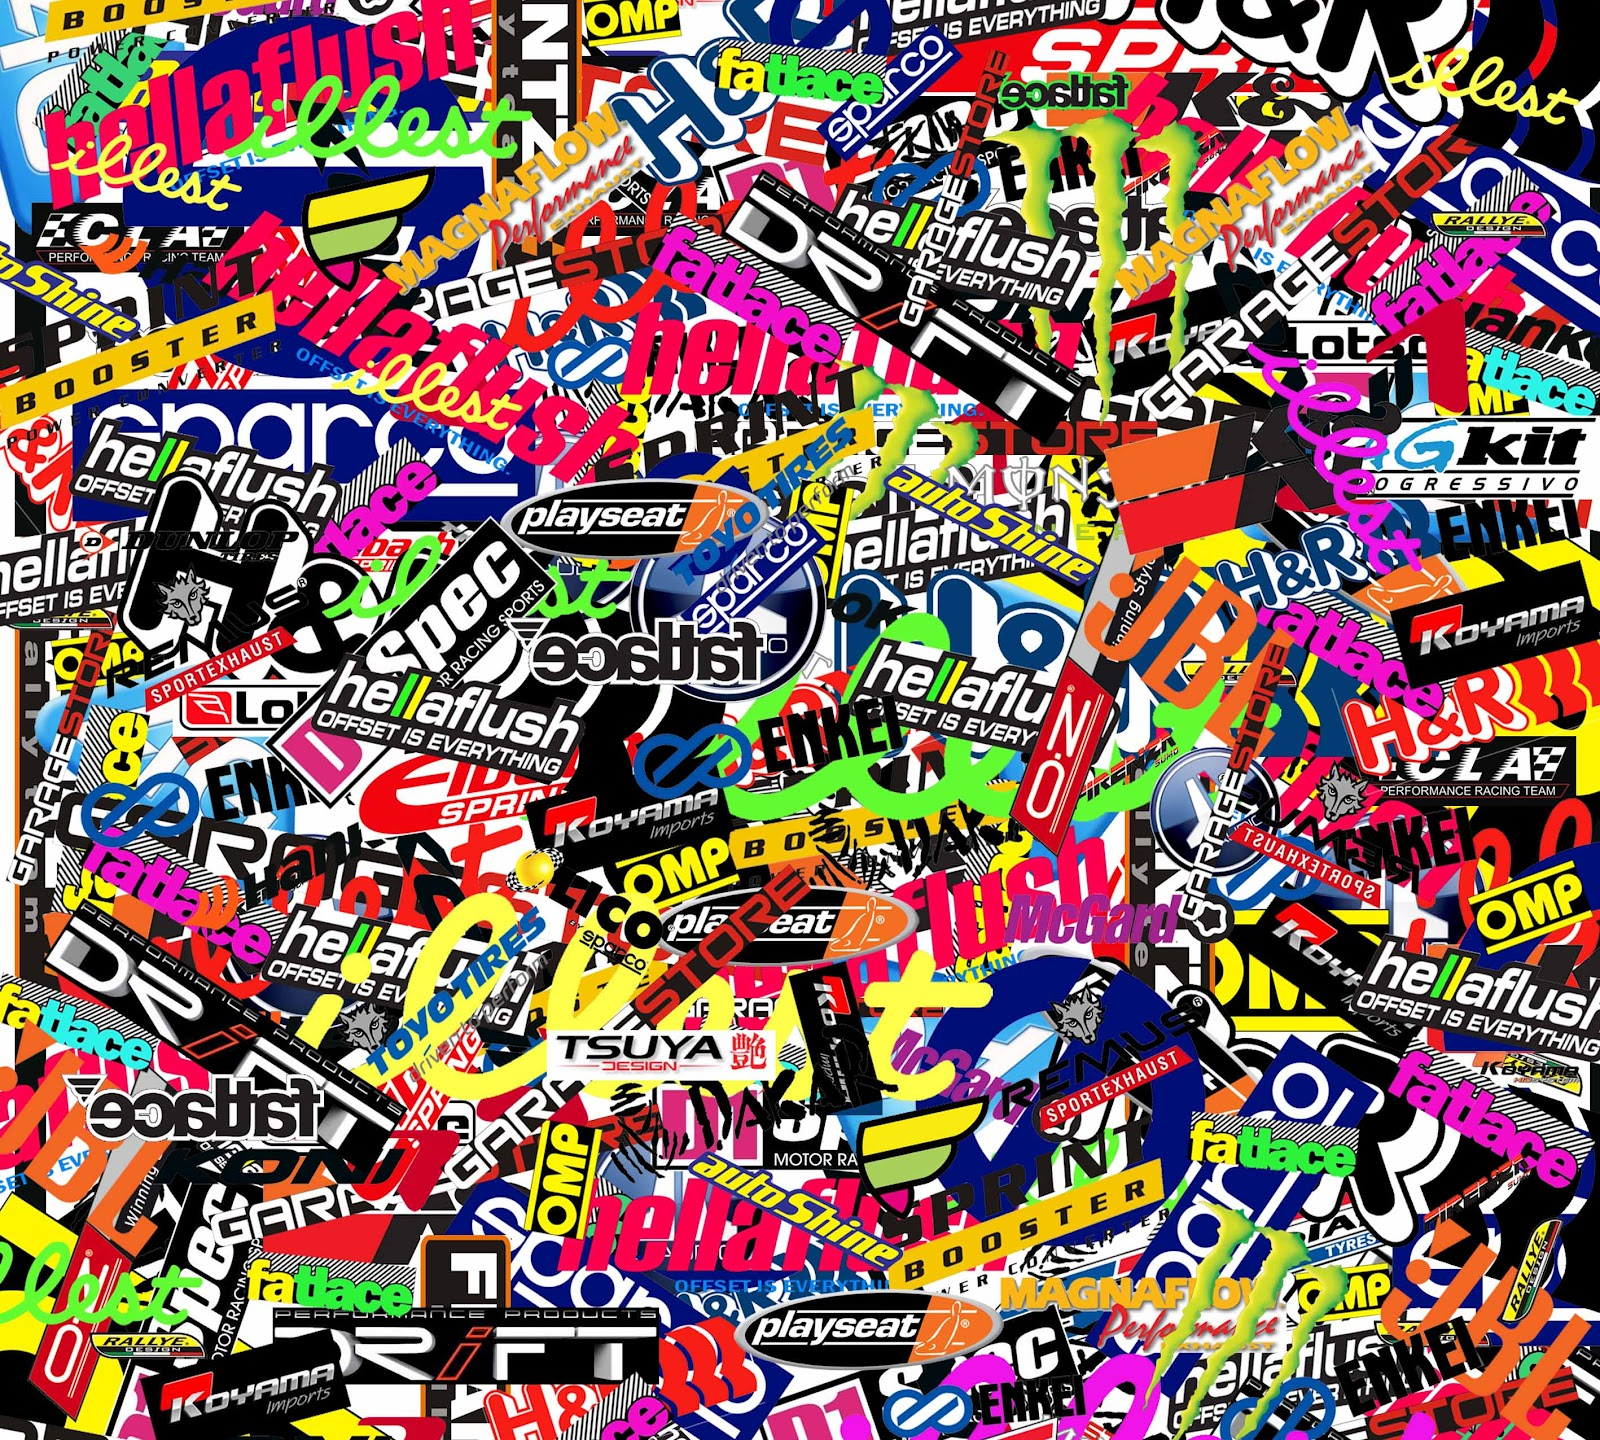 Wallpaper Decal: Sticker Bomb Wallpaper HD